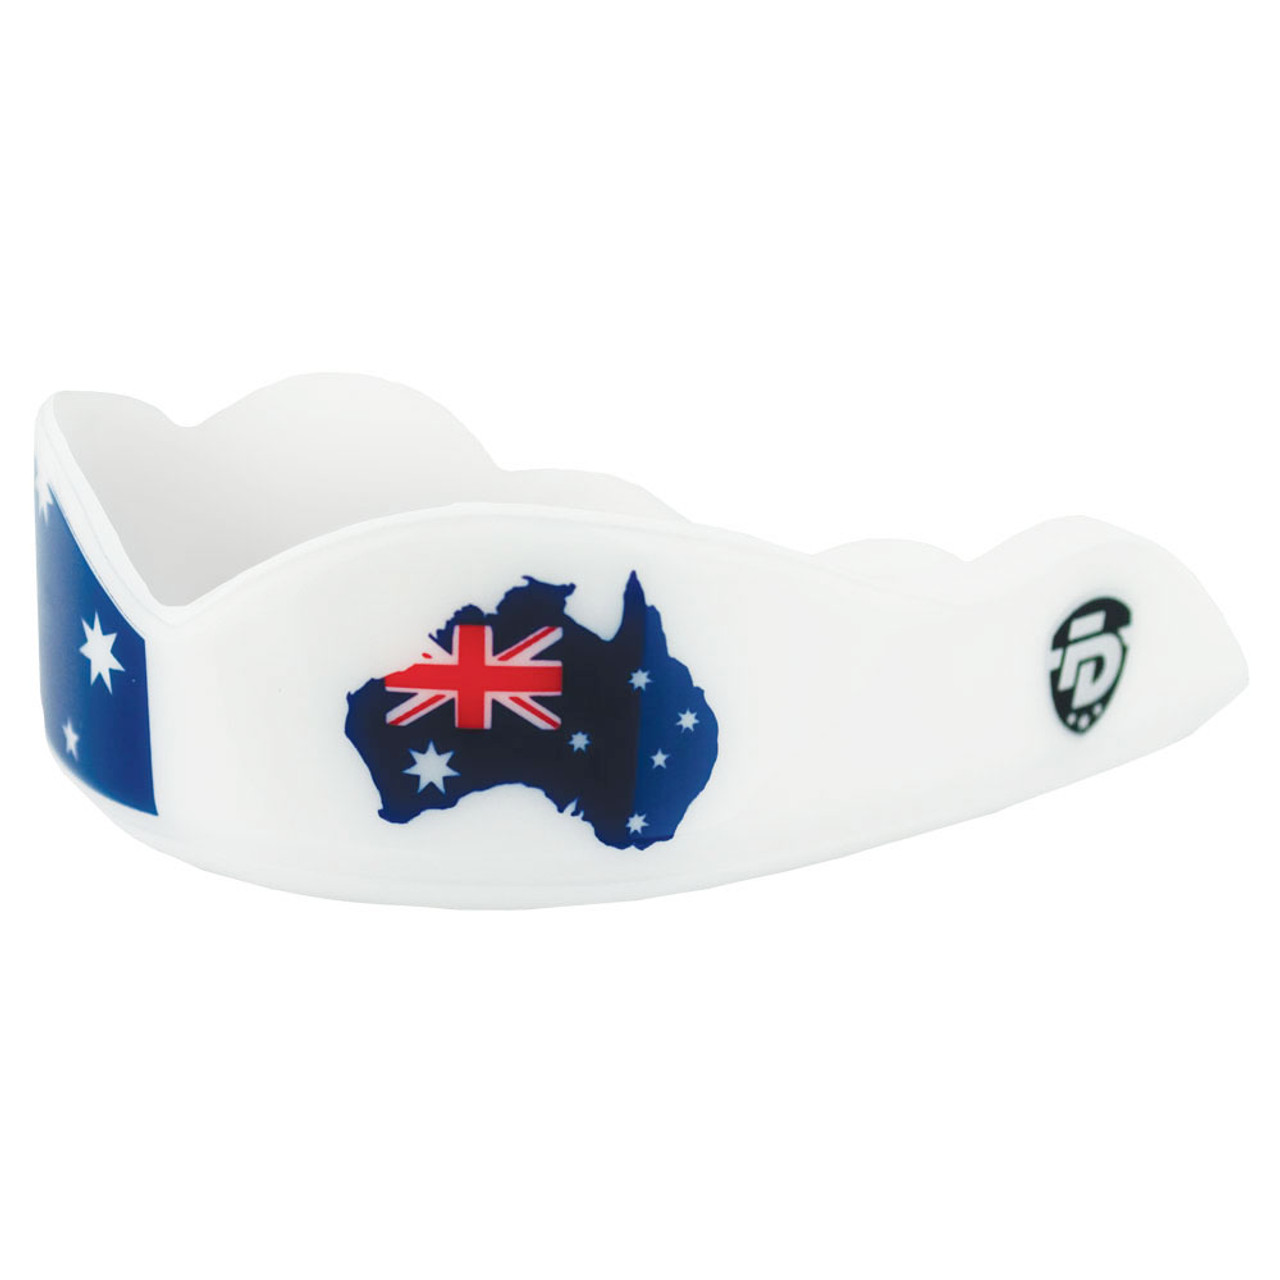 Fightdentist Boil & Bite Mouth Guard | for Boxing and Martial Arts |  Down Under